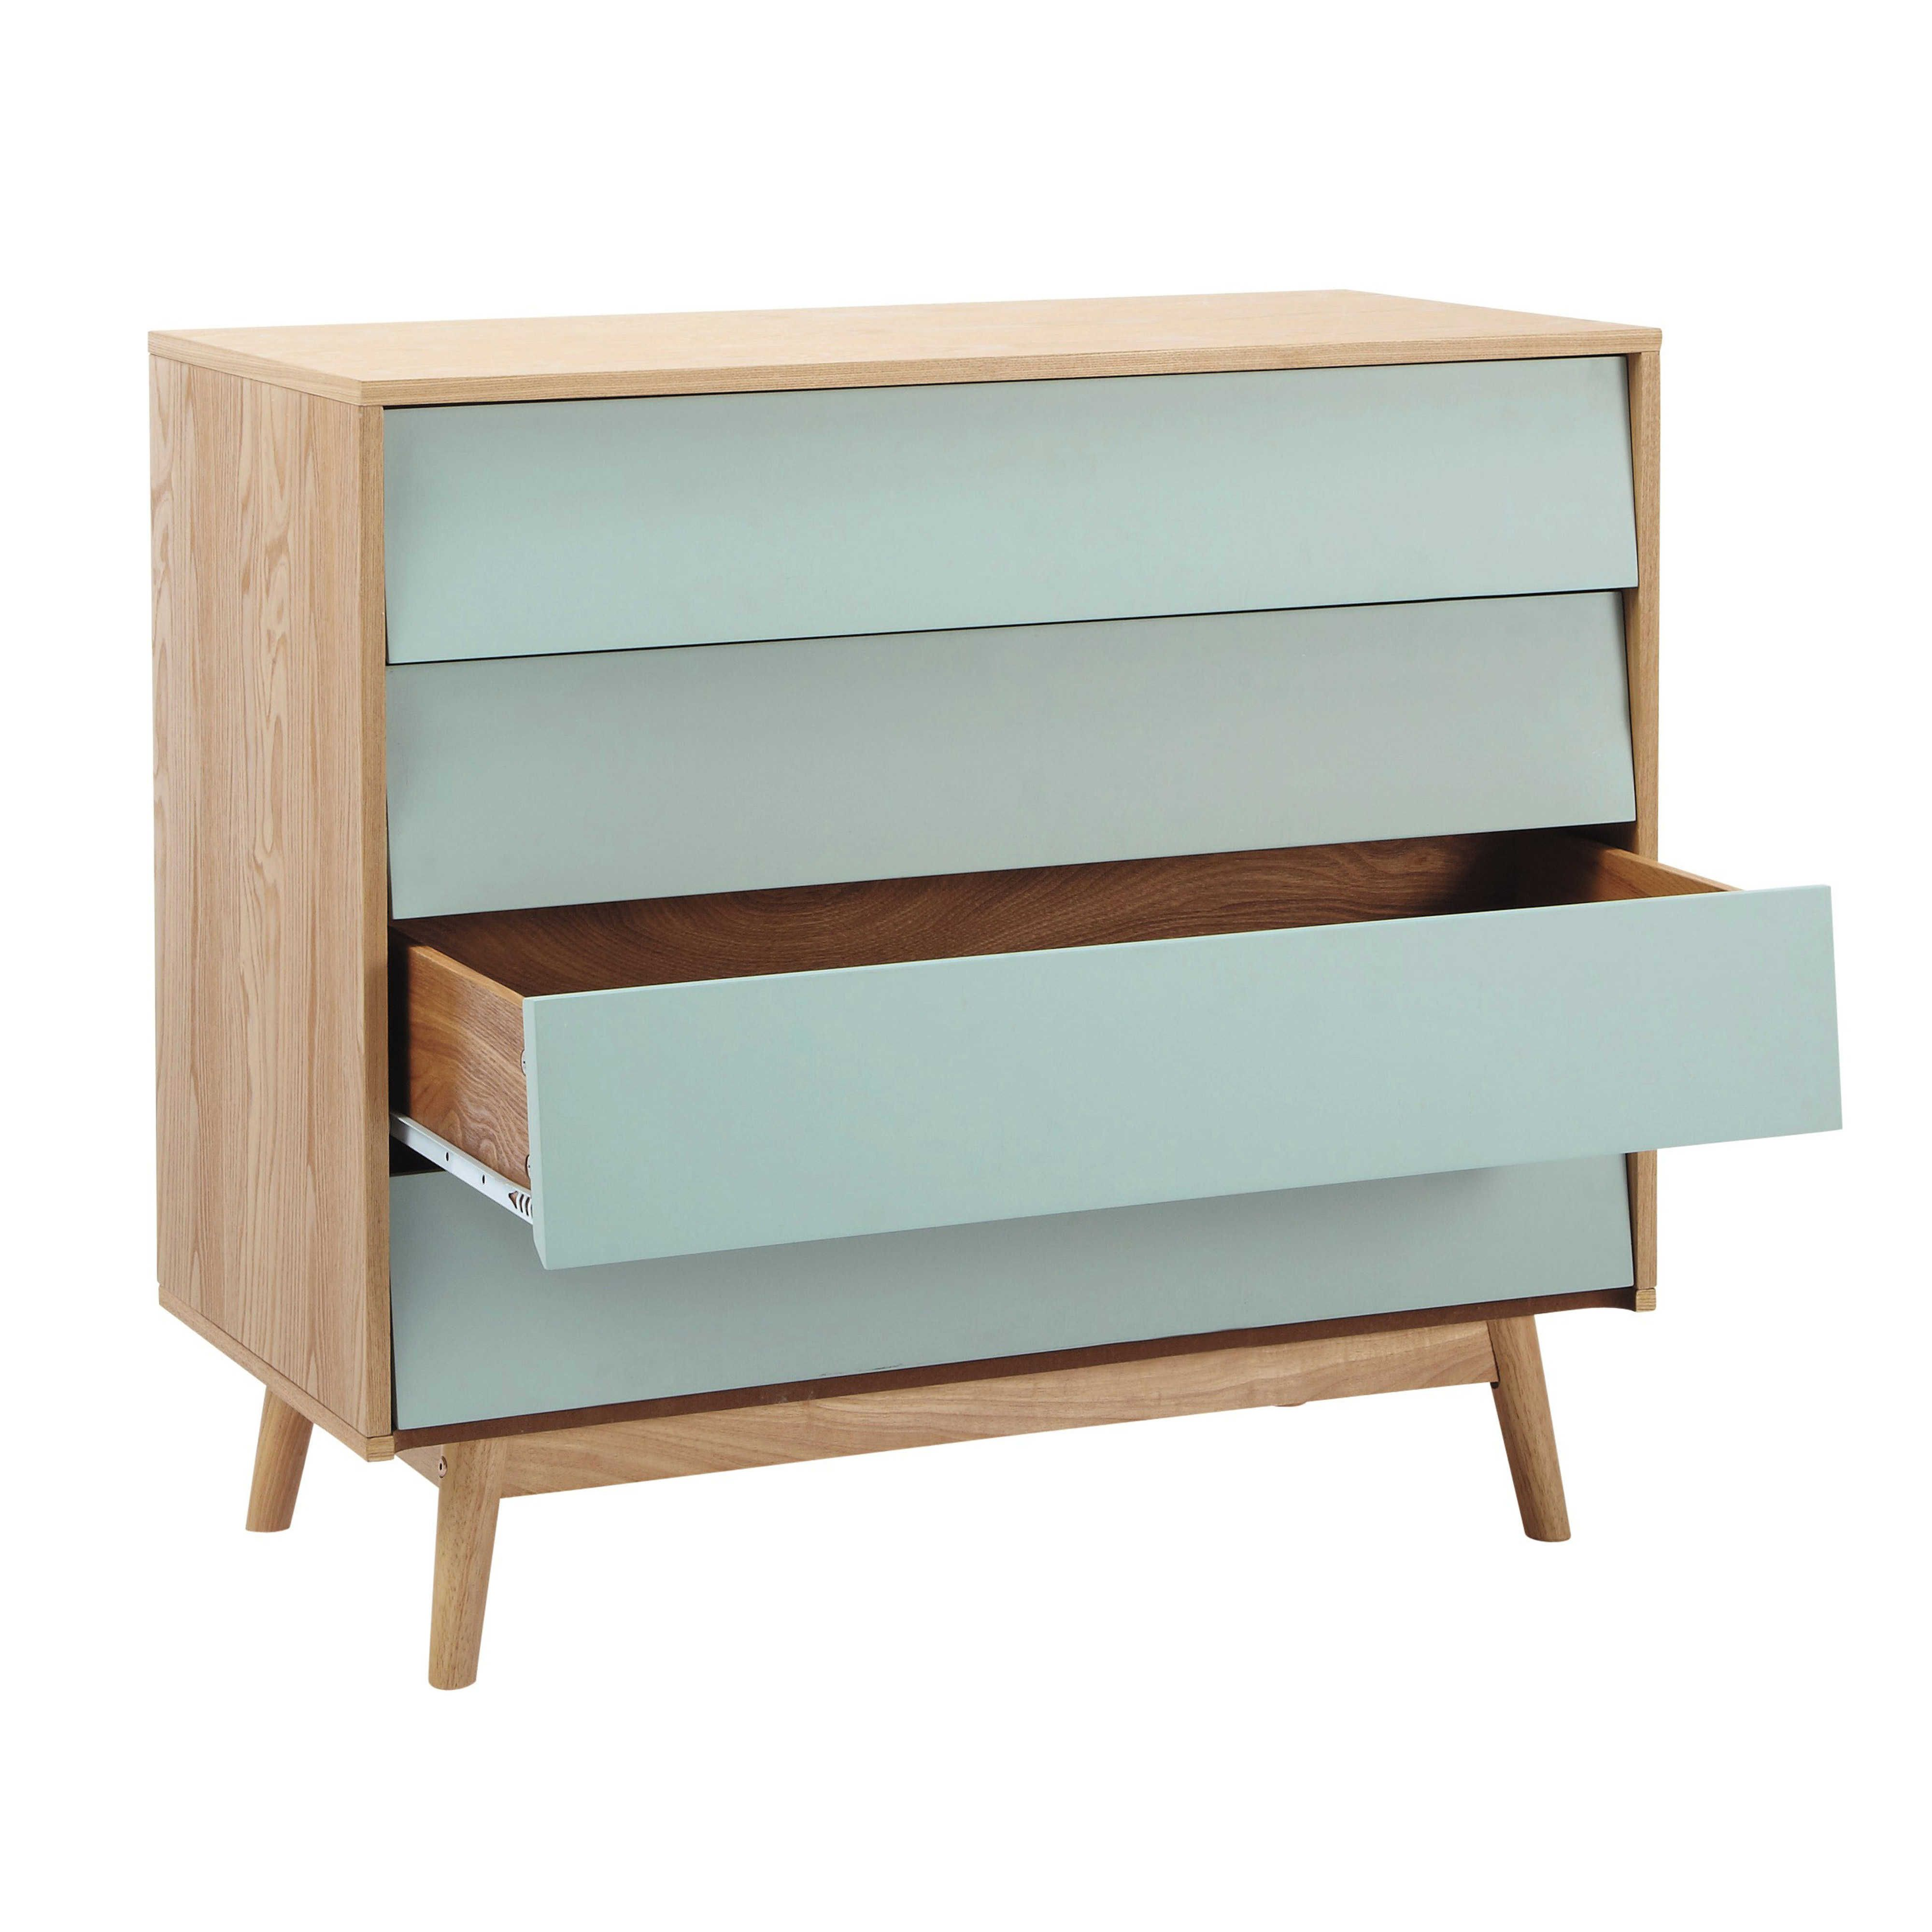 Chests of drawers & console tables in 2019 | Chest of Drawers ...